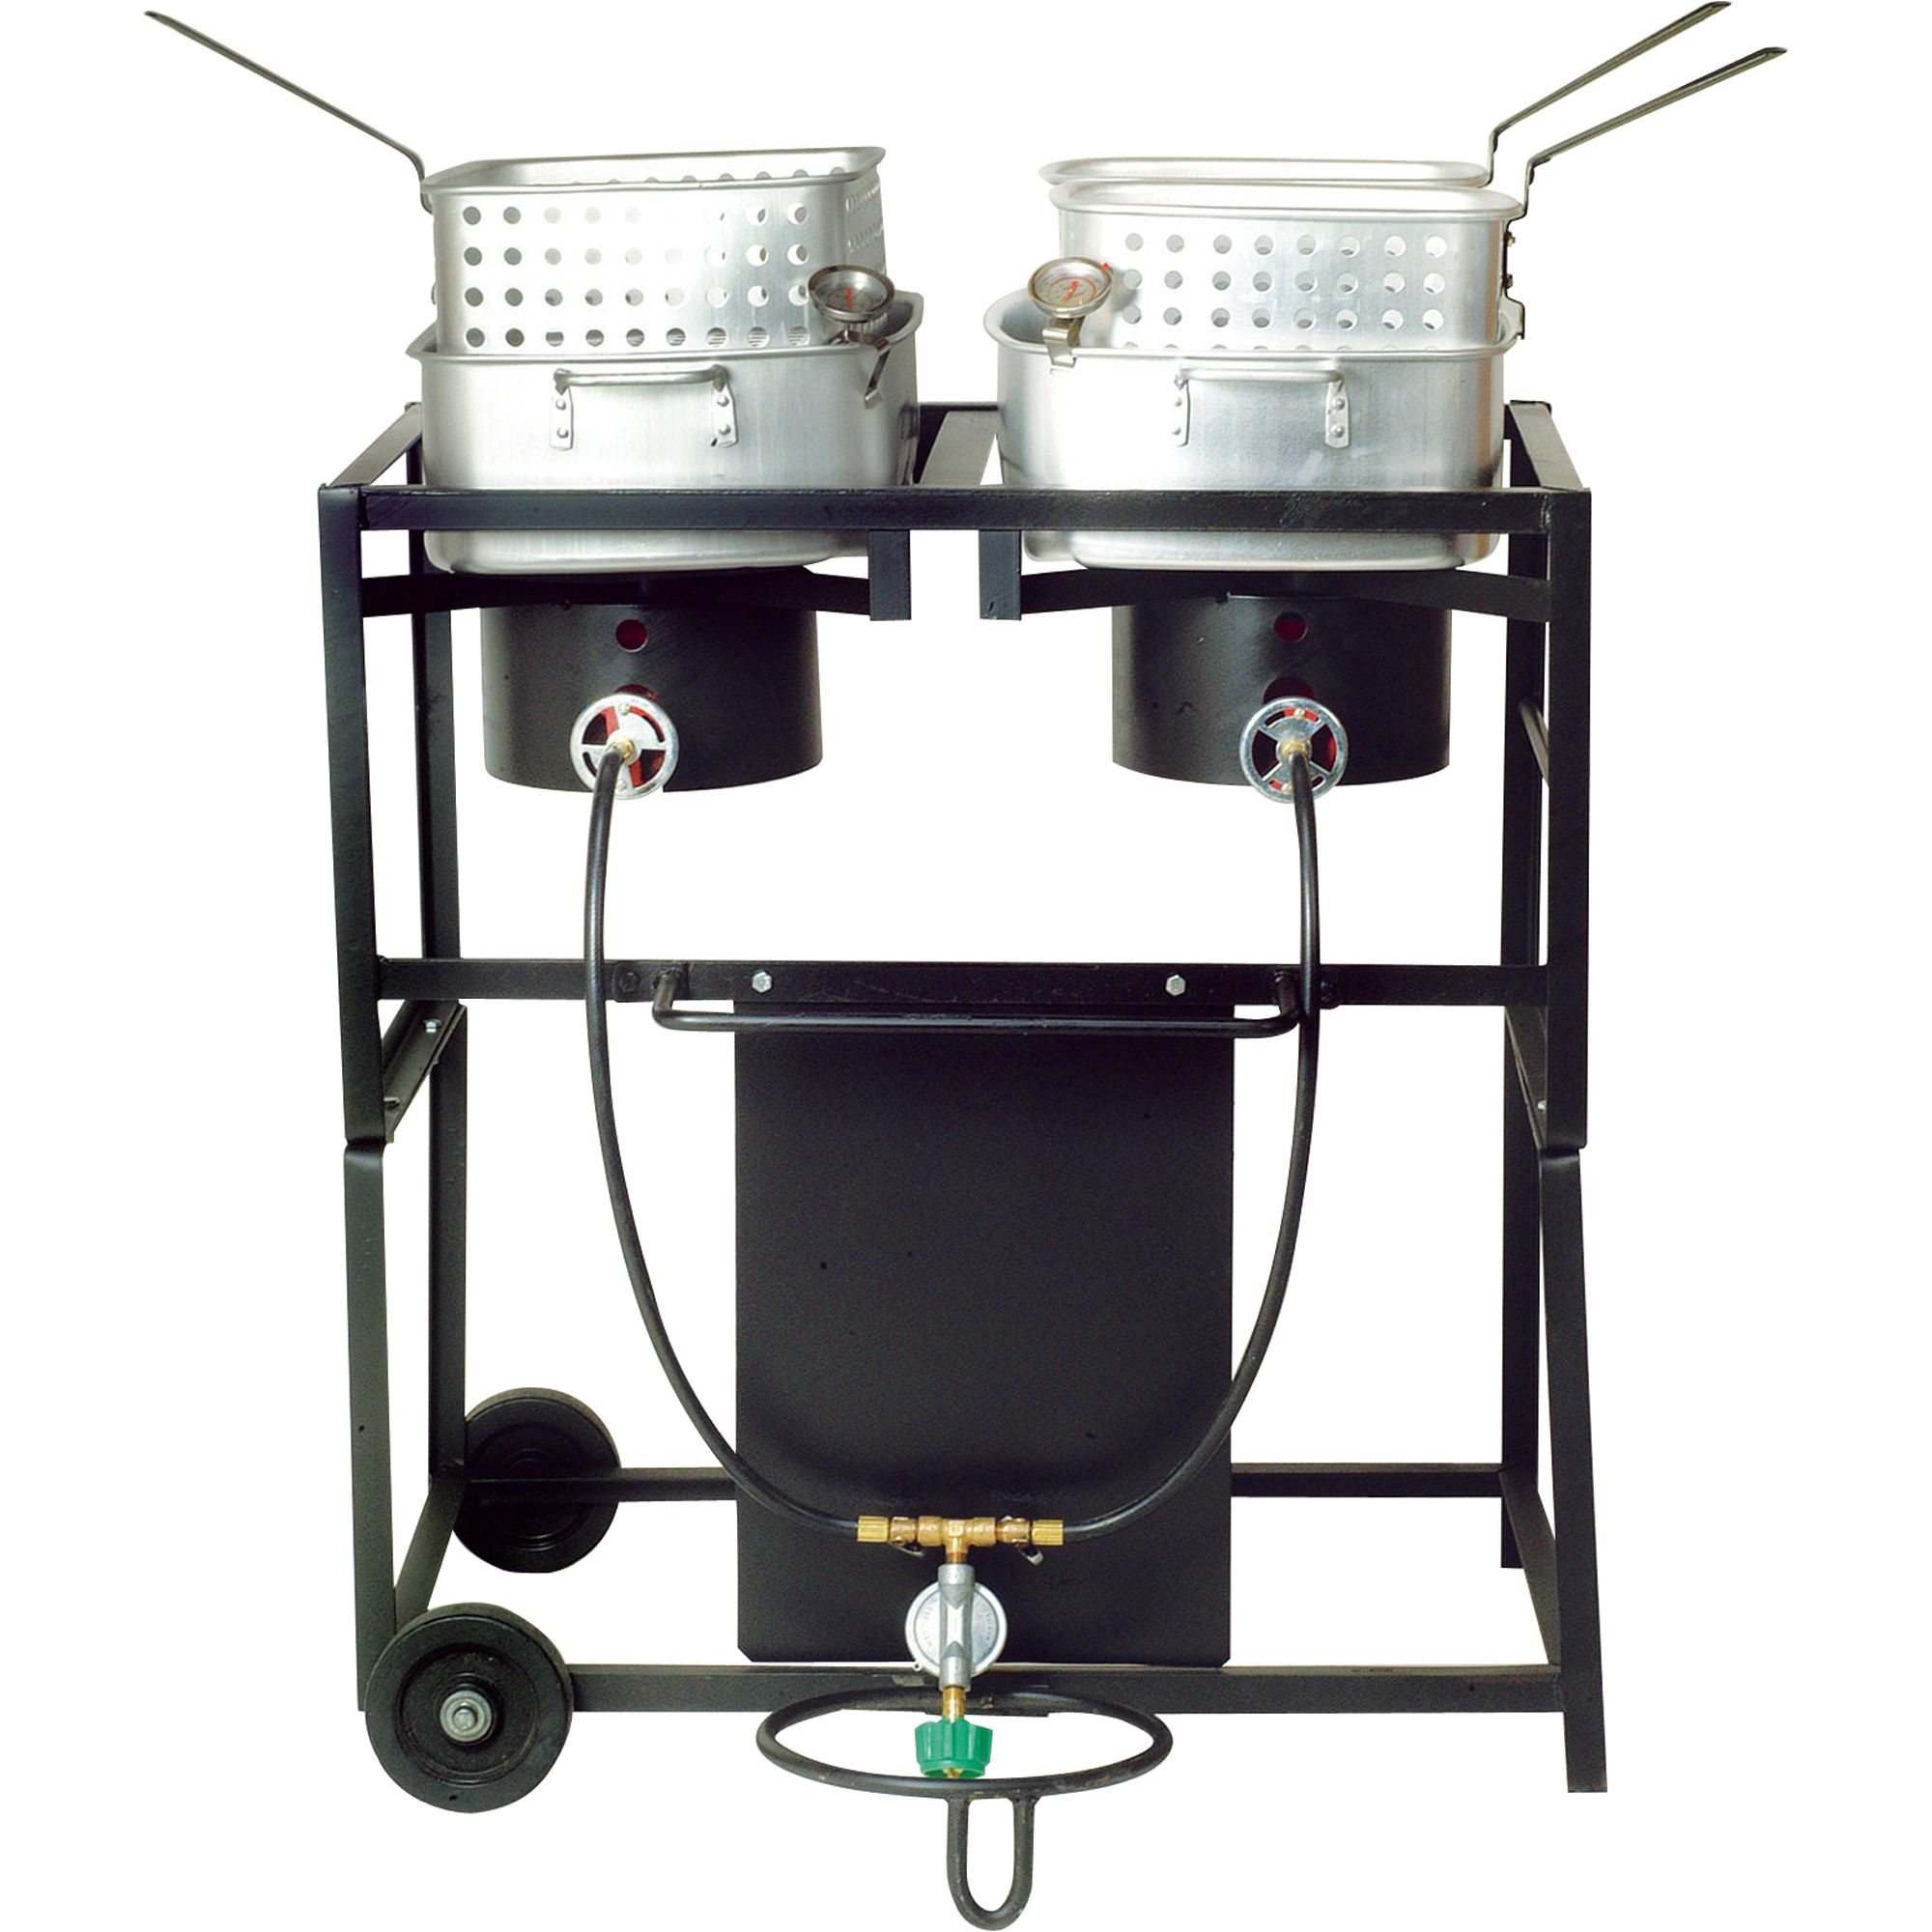 Outdoor Deep Fryers Turkey Fryers Food Processing Northern